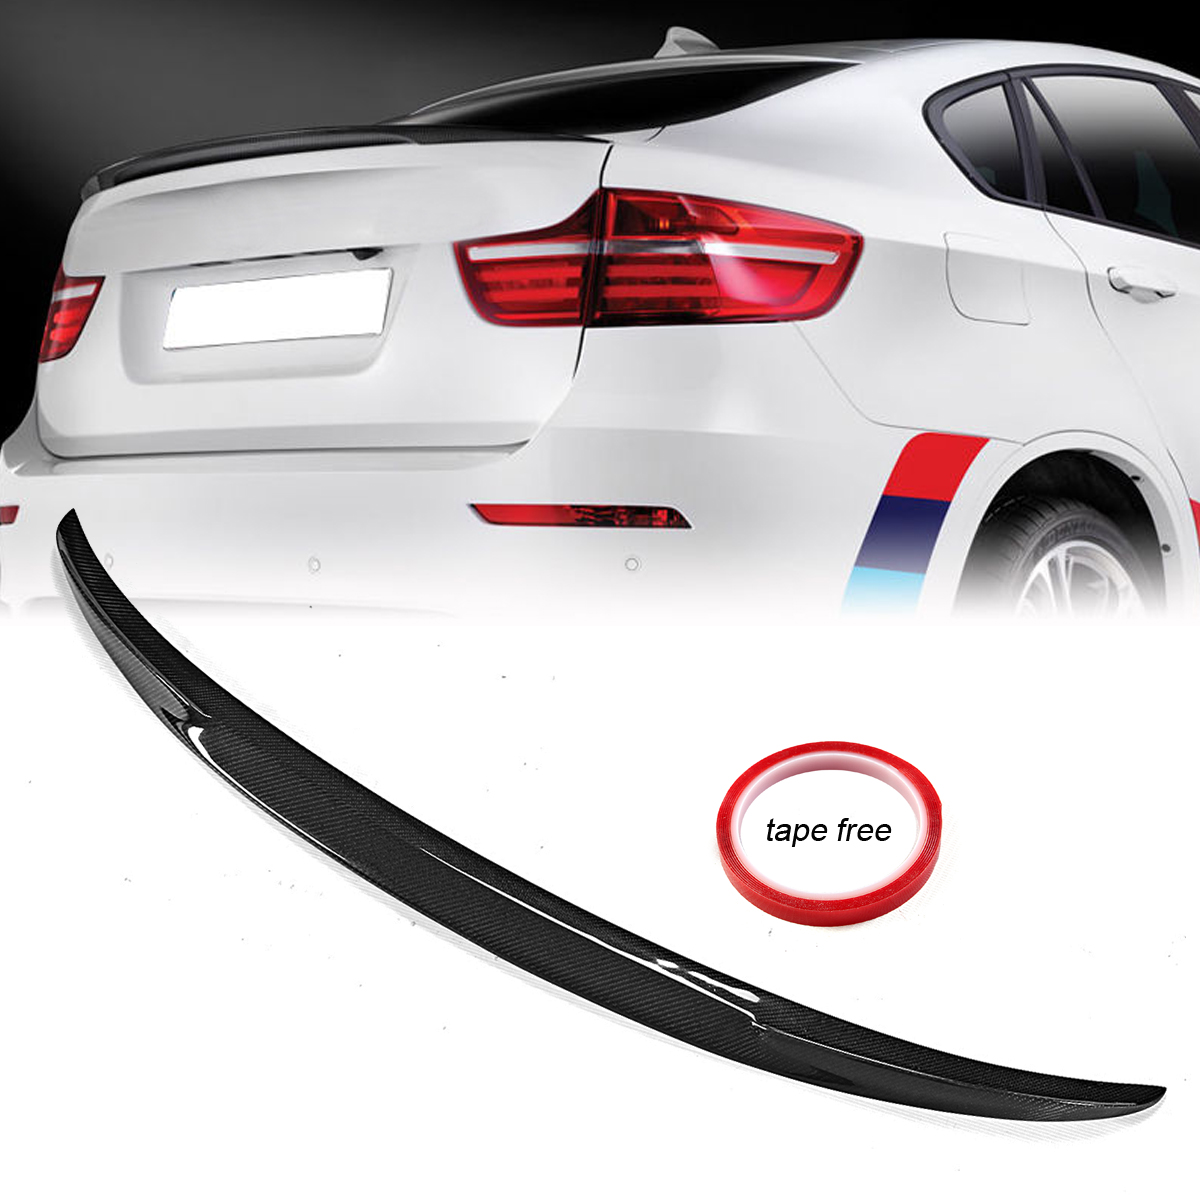 New Auto Car Spoiler Wing for BMW Performance Style Real Carbon Fiber Rear Trunk Lip Spoiler Wing For 2008-2014 for BMW E71 X6 carbon fiber auto car rear trunk wing lip spoiler for audi for a3